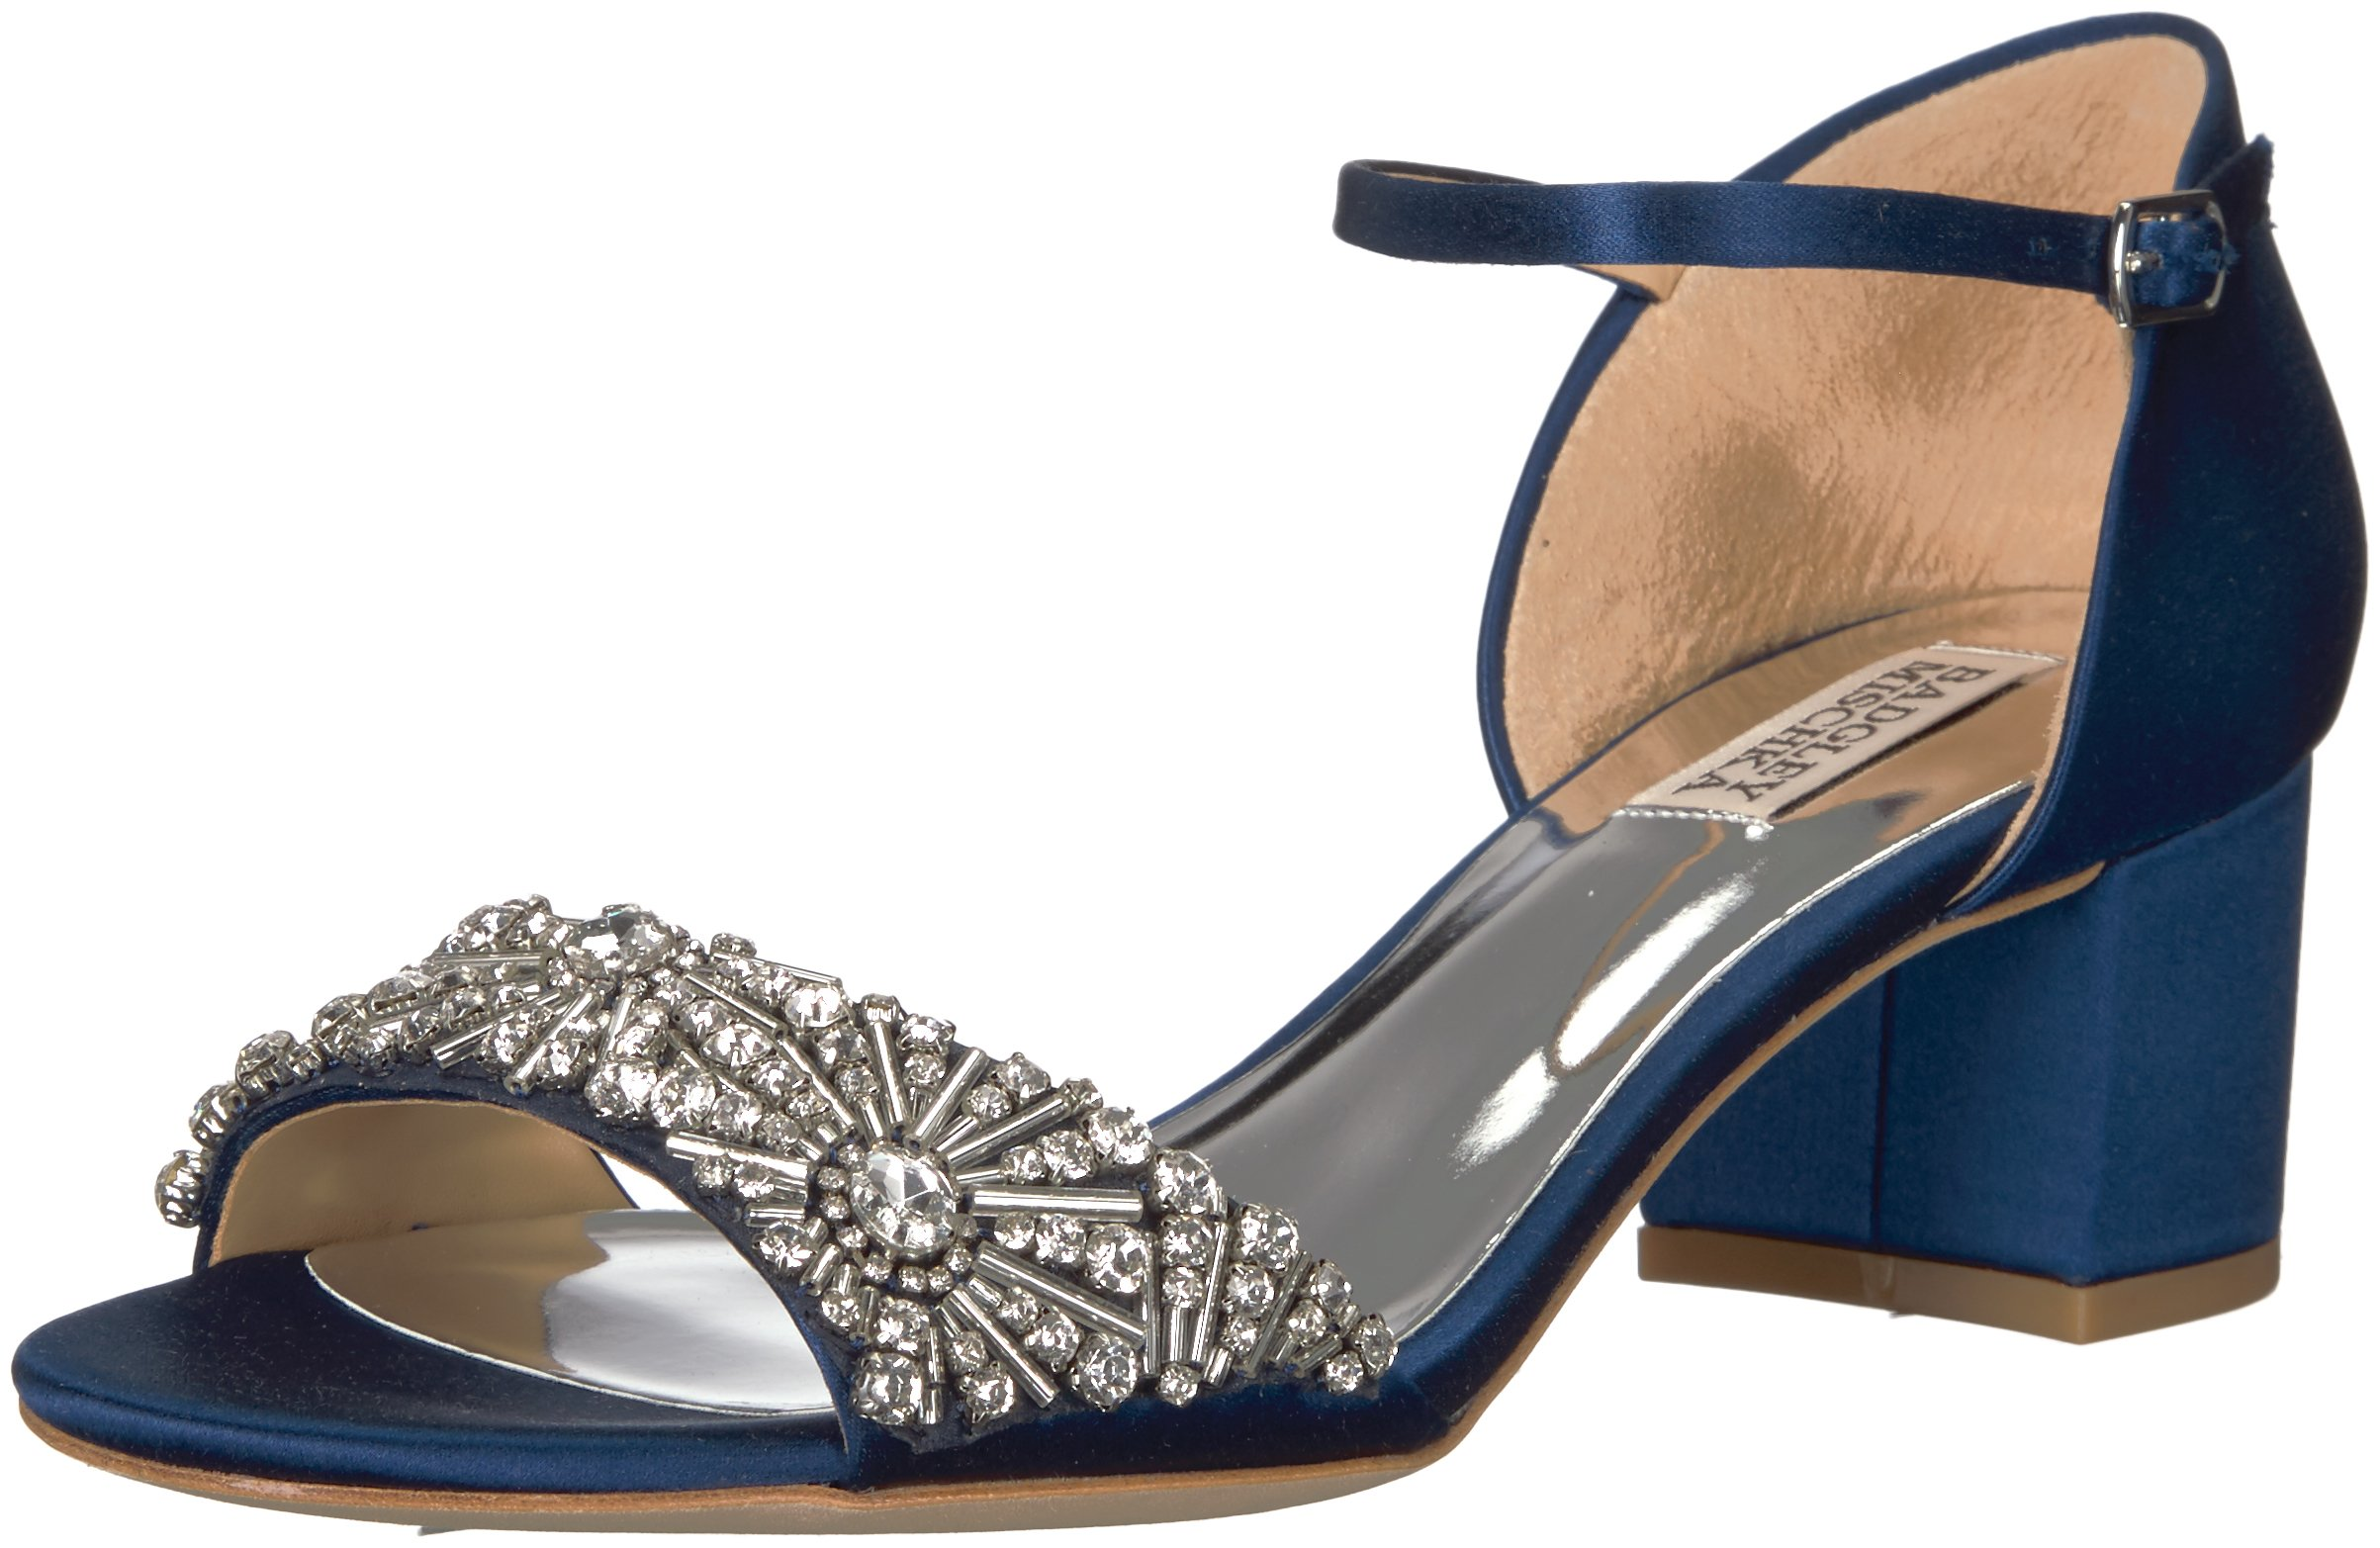 Badgley Mischka Women's Mareva Heeled Sandal, Navy, 9.5 M US